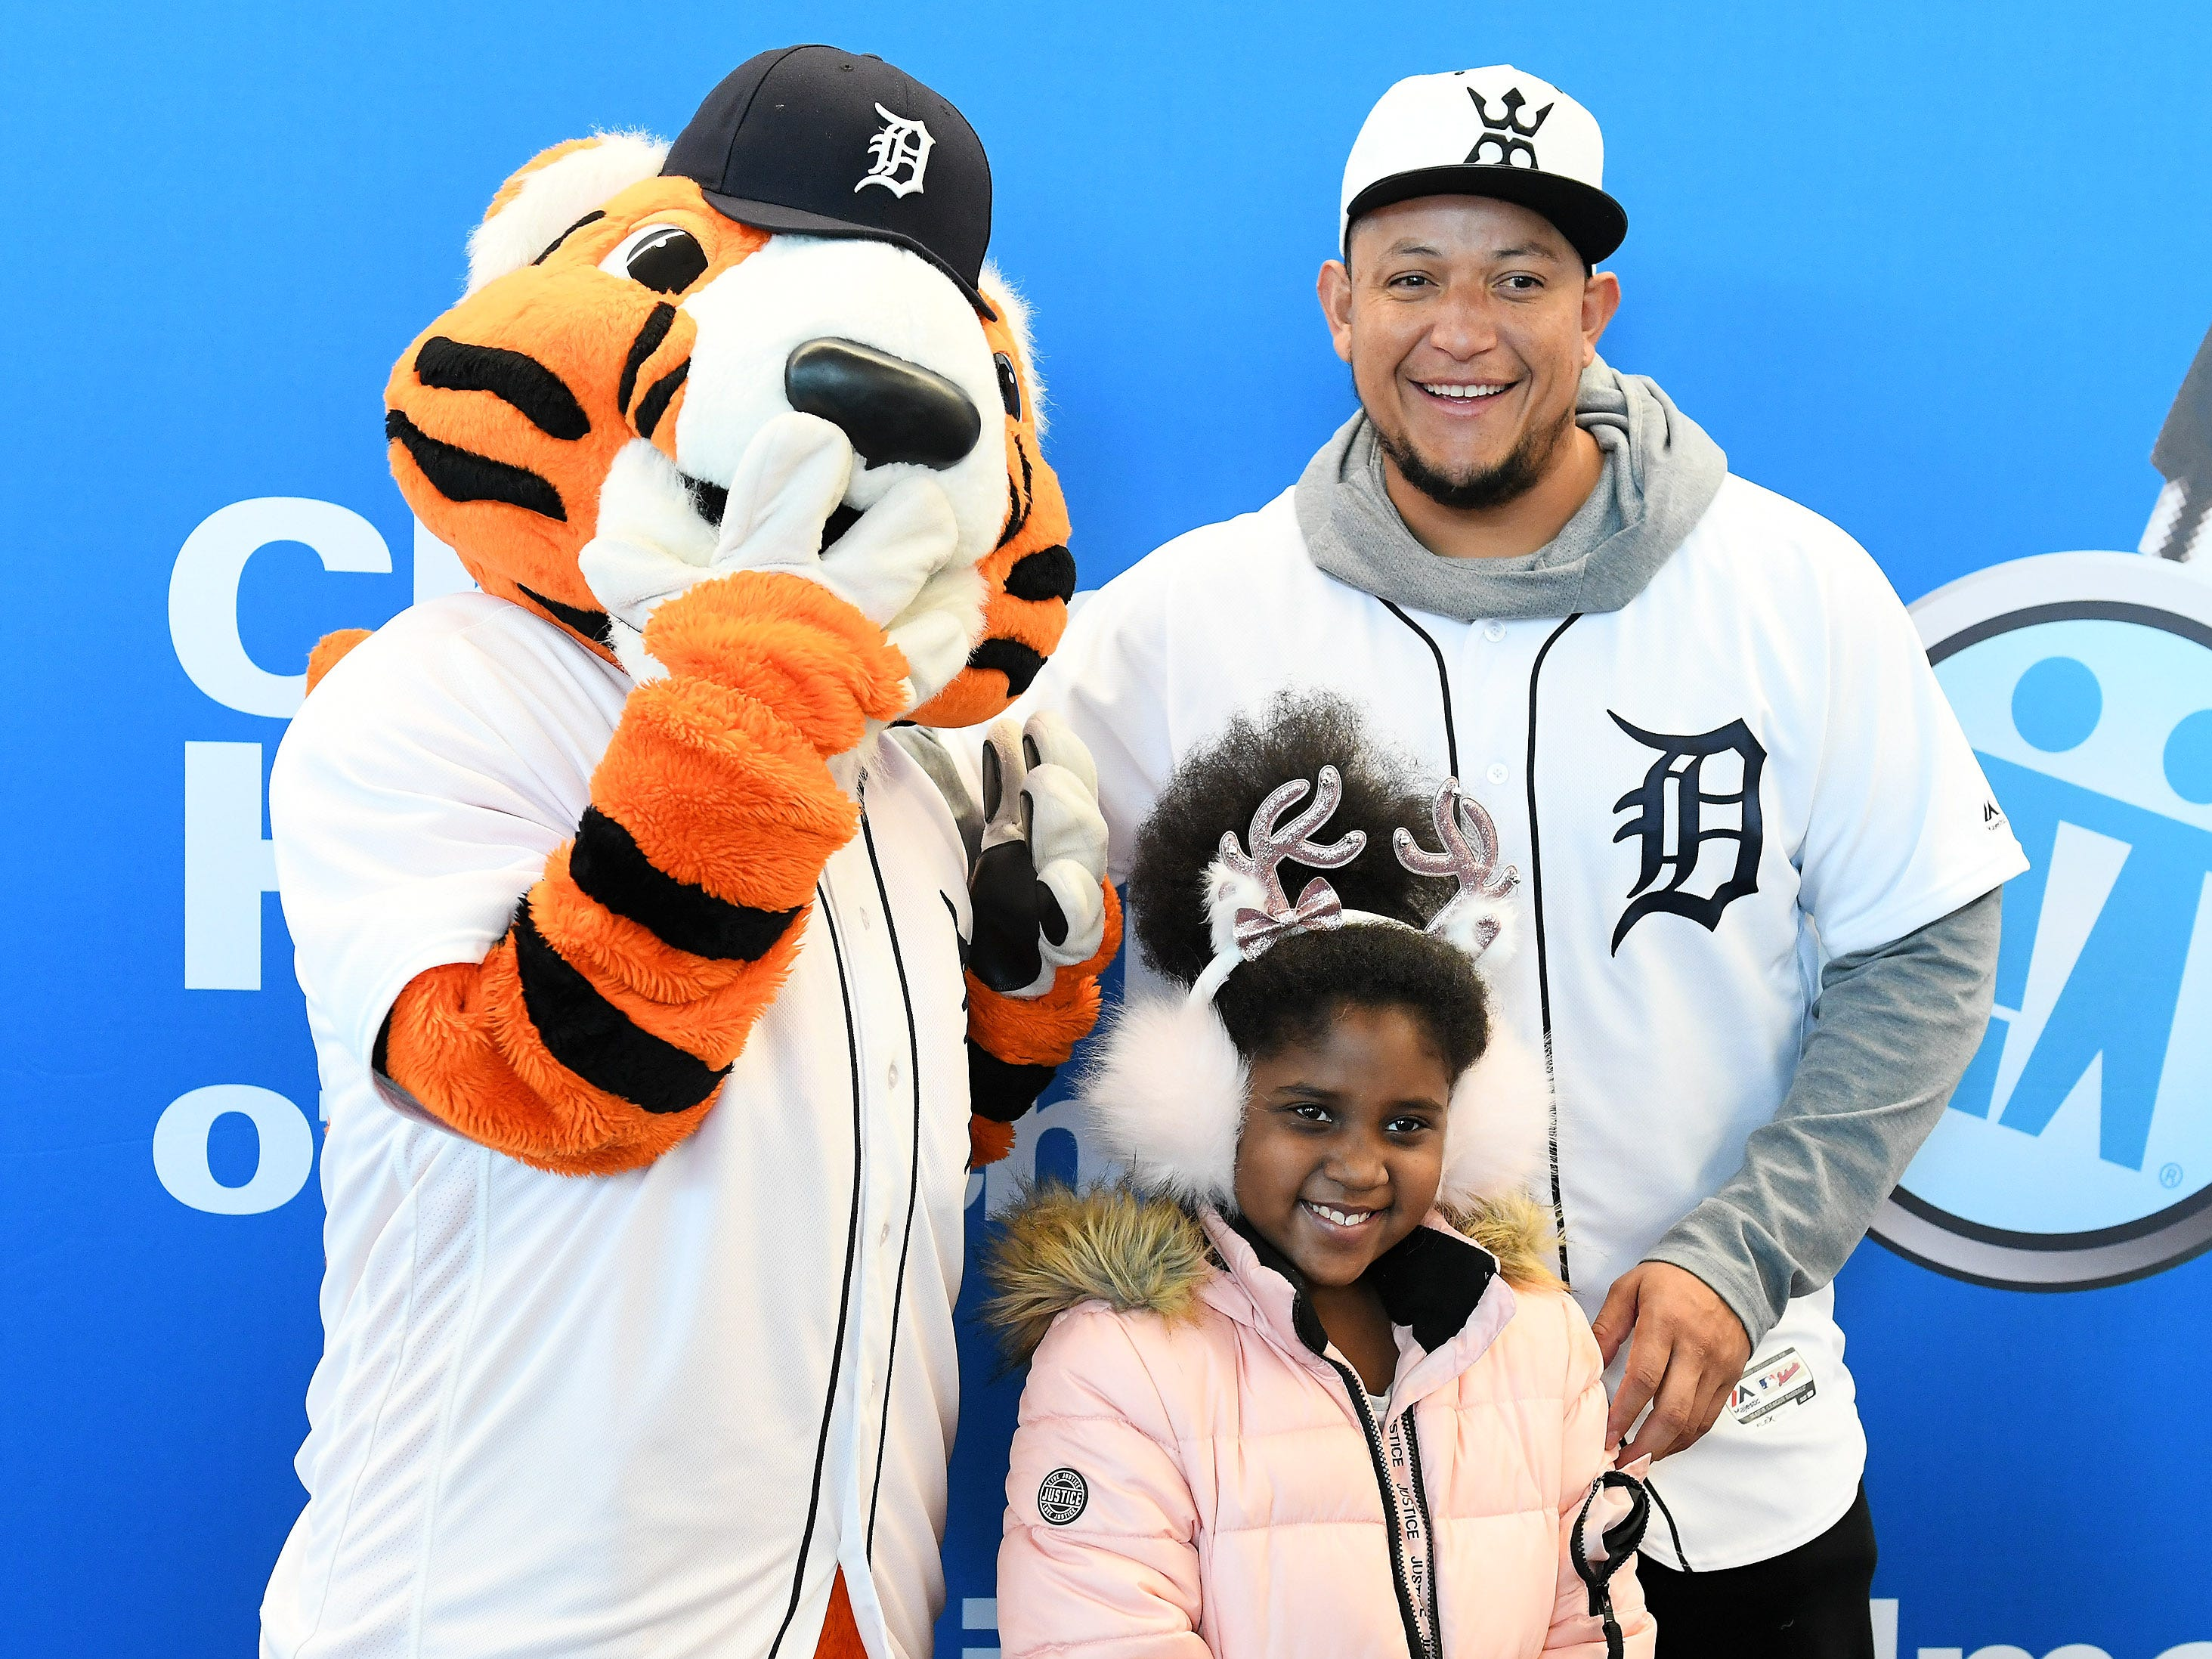 Tigers' Miguel Cabrera, right, has a photo taken with Paws and DaVeyna Perry-Stephens, 9, of Inkster who is recovering from brain surgery she had last month at the Children's Hospital of Michigan.